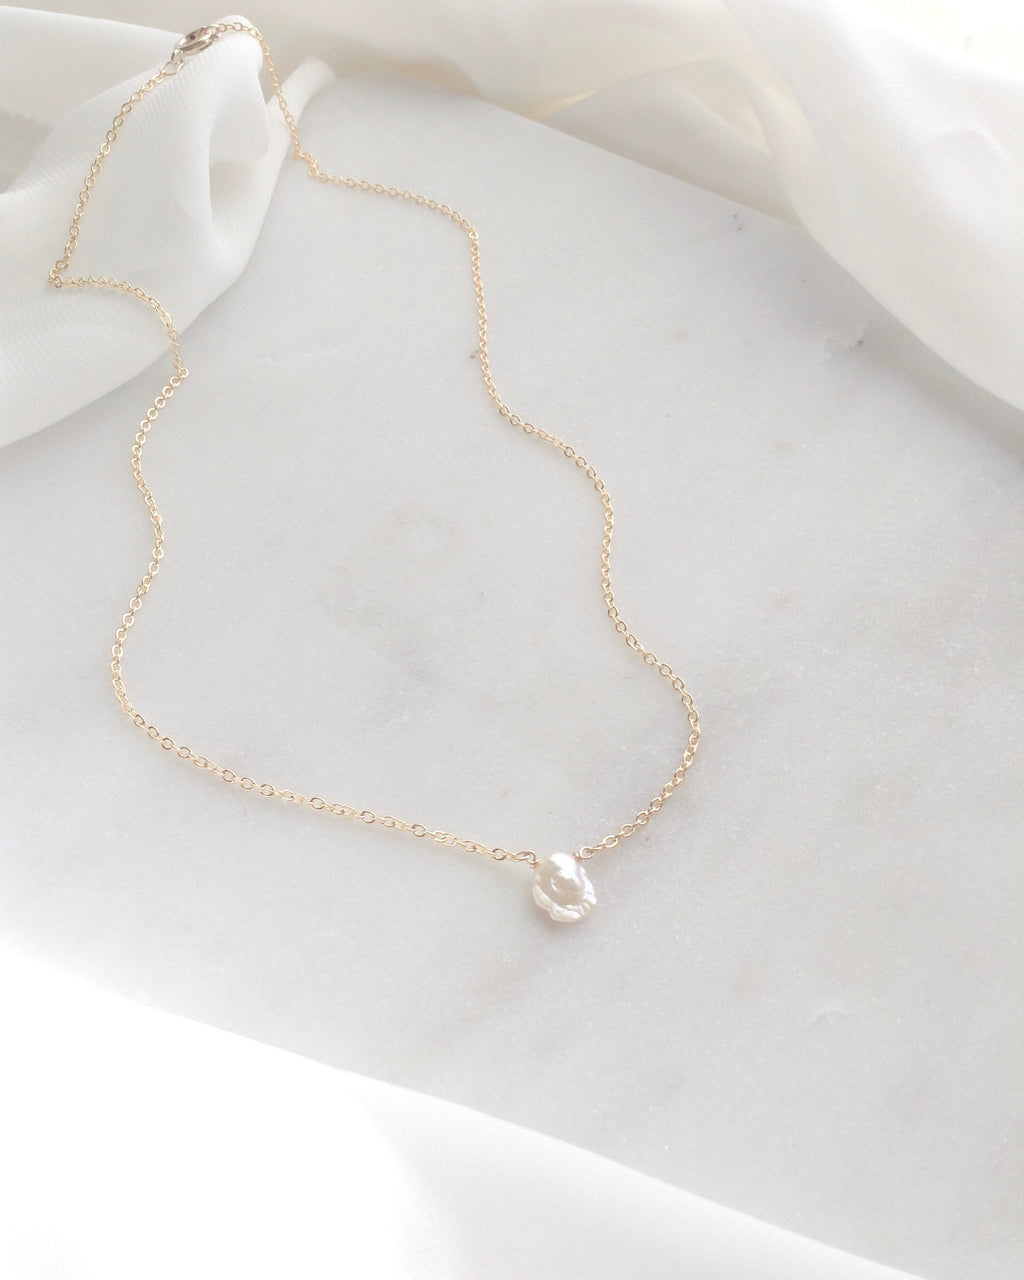 Keshi Pearl Necklace | Delicate Pearl Necklace | IB Jewelry